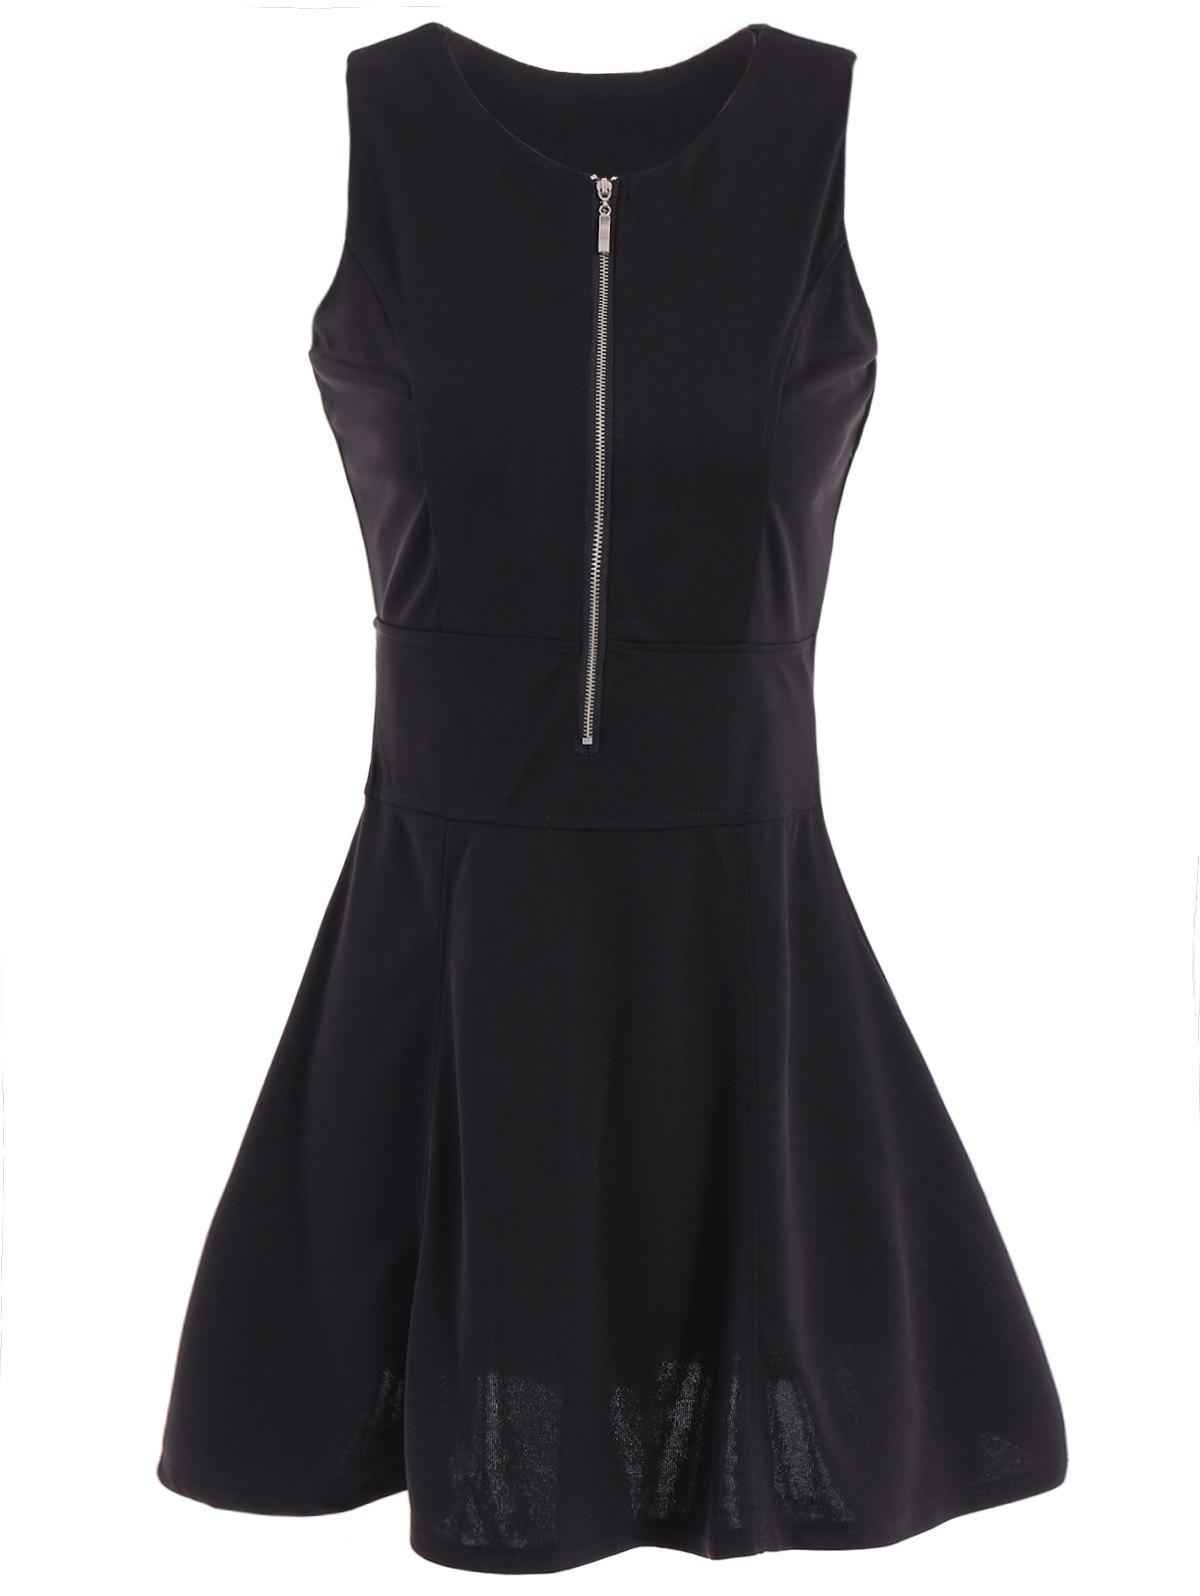 Elegant Women's Scoop Neck Black Sundress - BLACK M